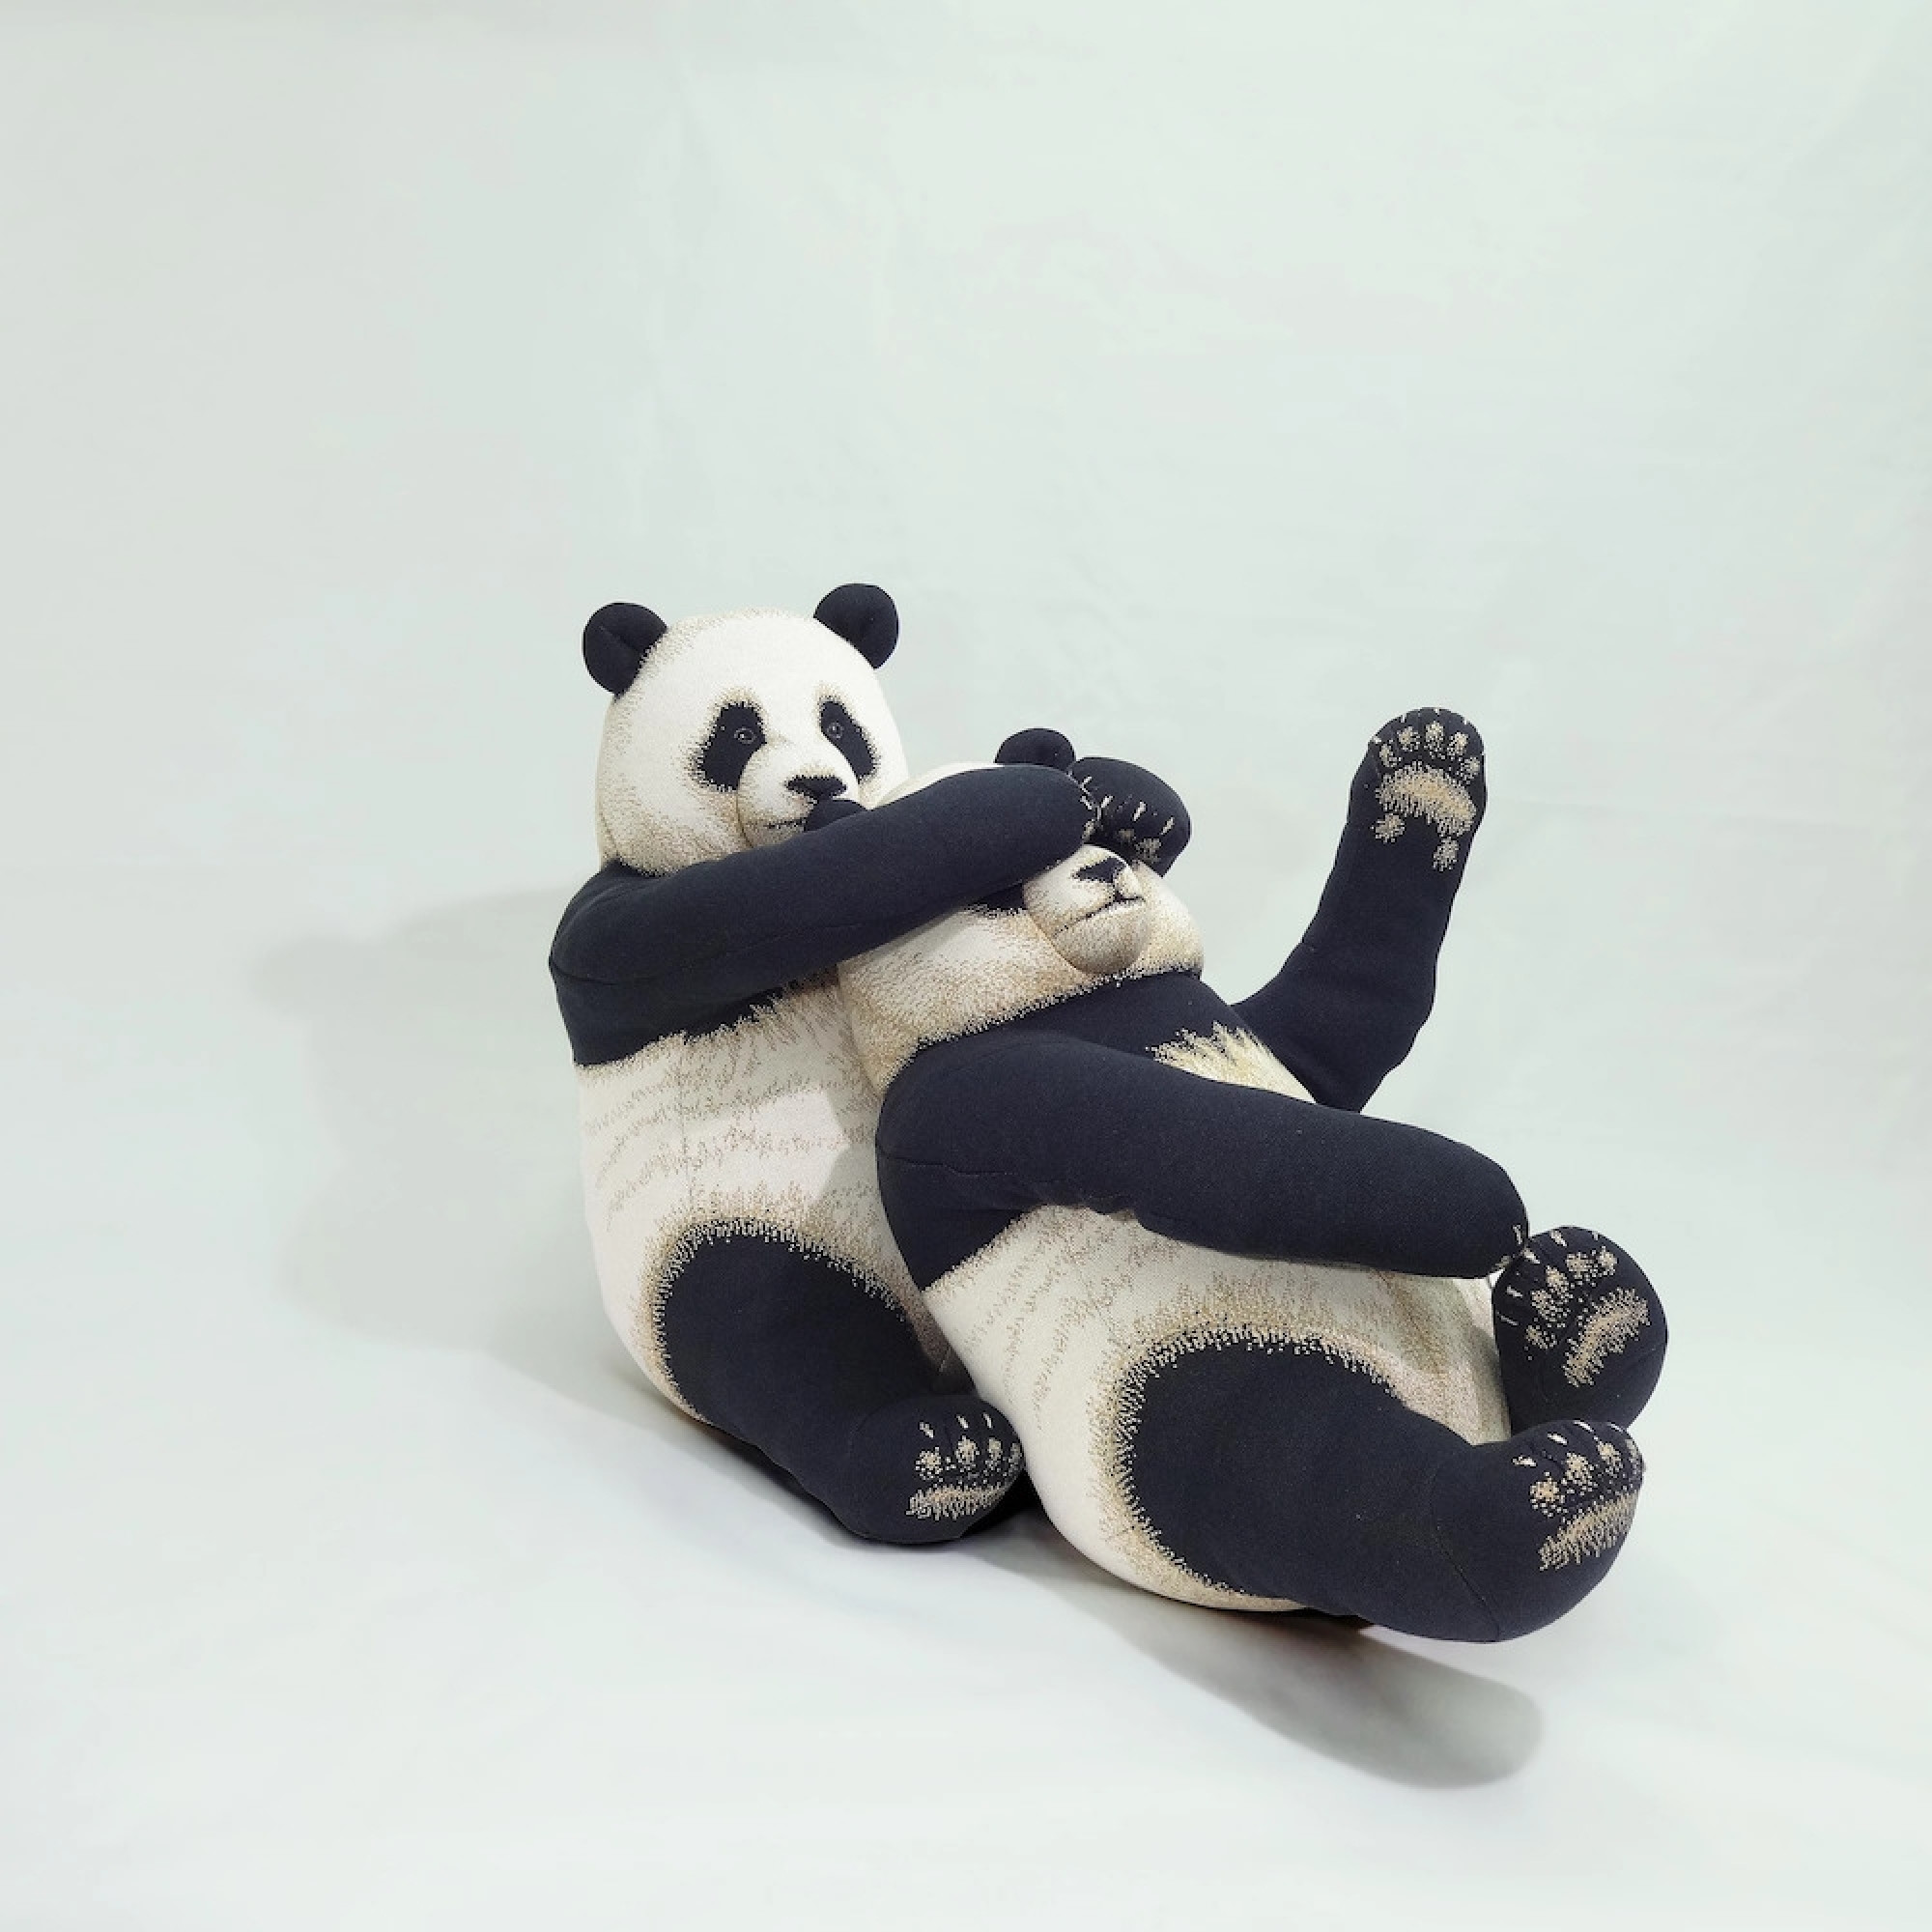 panda bean bag chair indoor bistro table chairs giant bags home decor and lifestyle